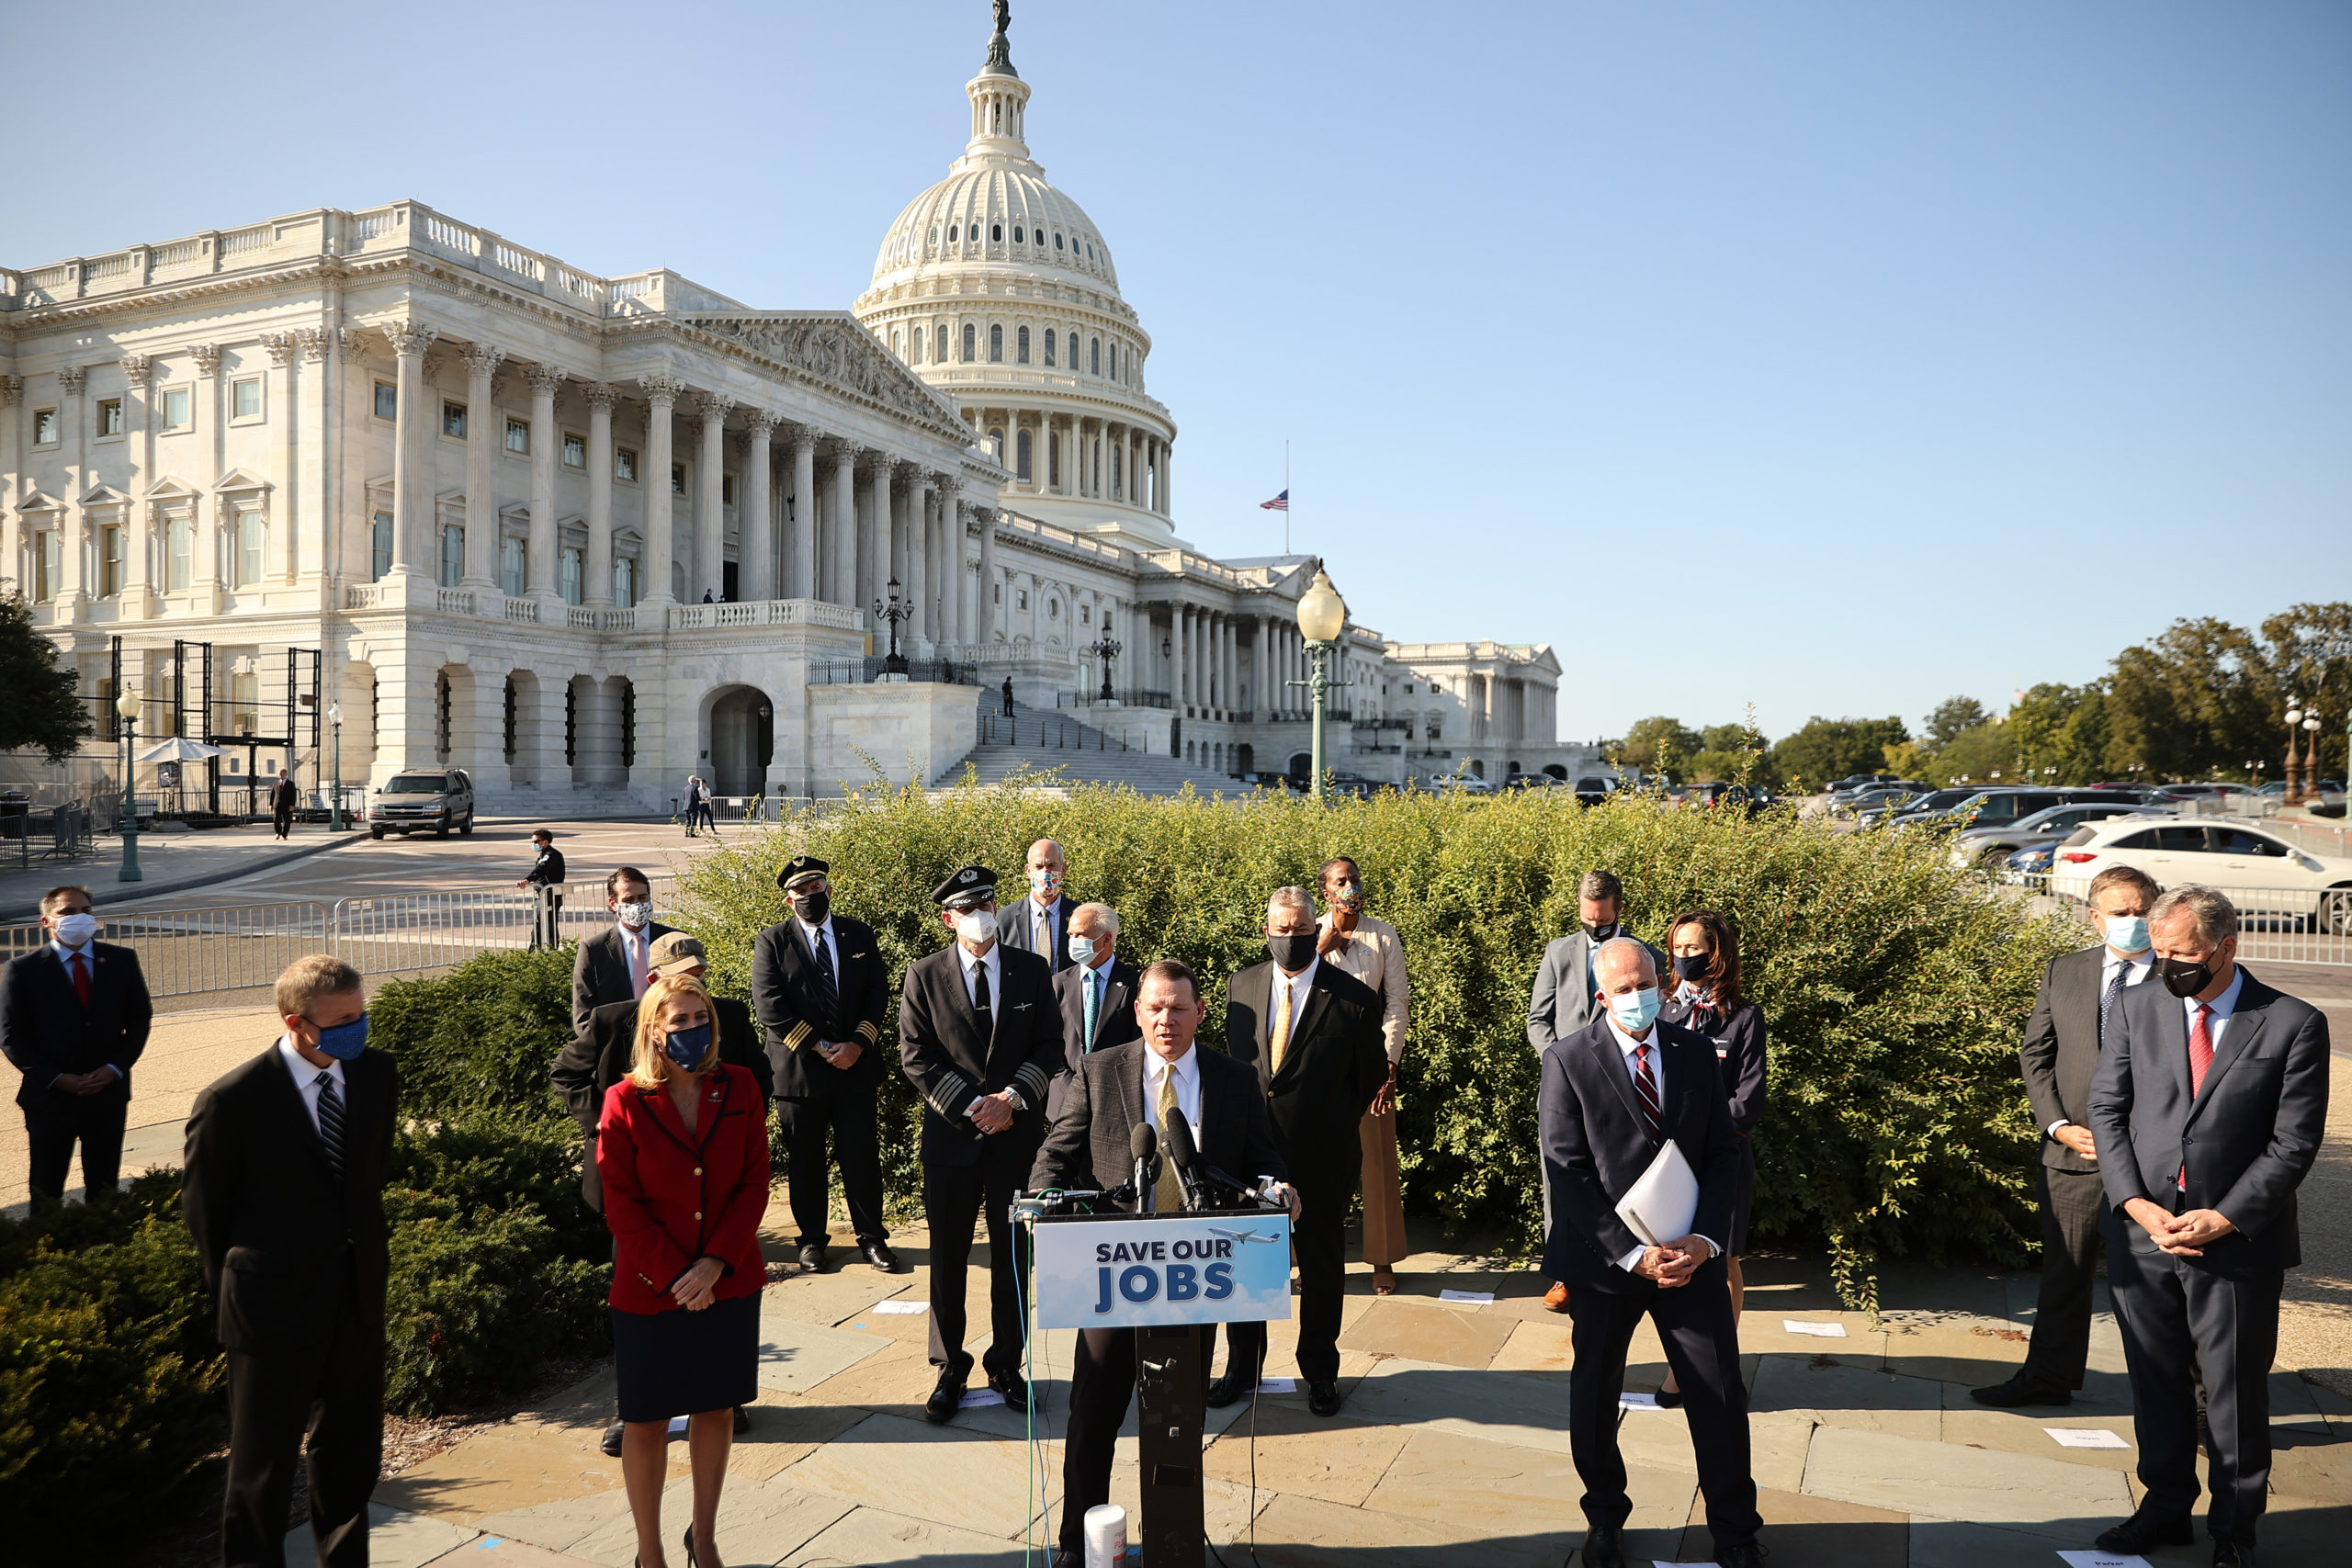 House Committee on Transportation and Infrastructure ranking member Rep. Sam Graves joins airline executives, union heads and fellow political leaders to call on Congress to pass coronavirus relief for the industry in September. (Chip Somodevilla/Getty Images)